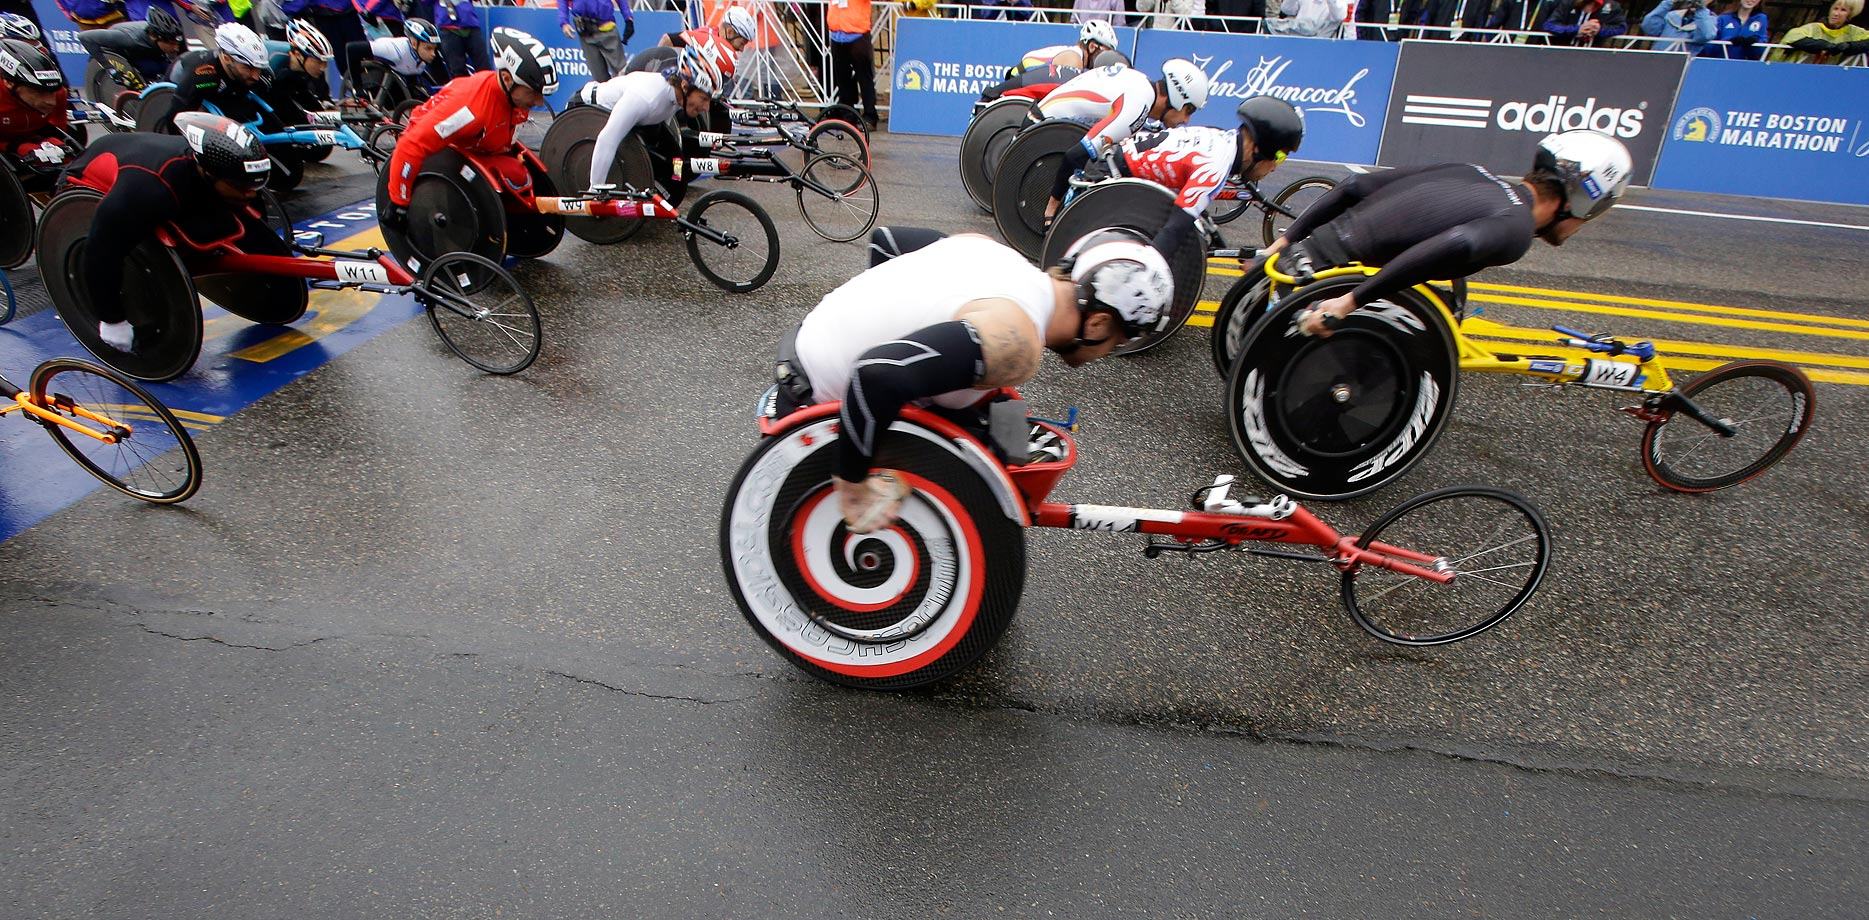 Ernst Van Dyk, foreground, of South Africa, leaves the start of the wheelchair division.